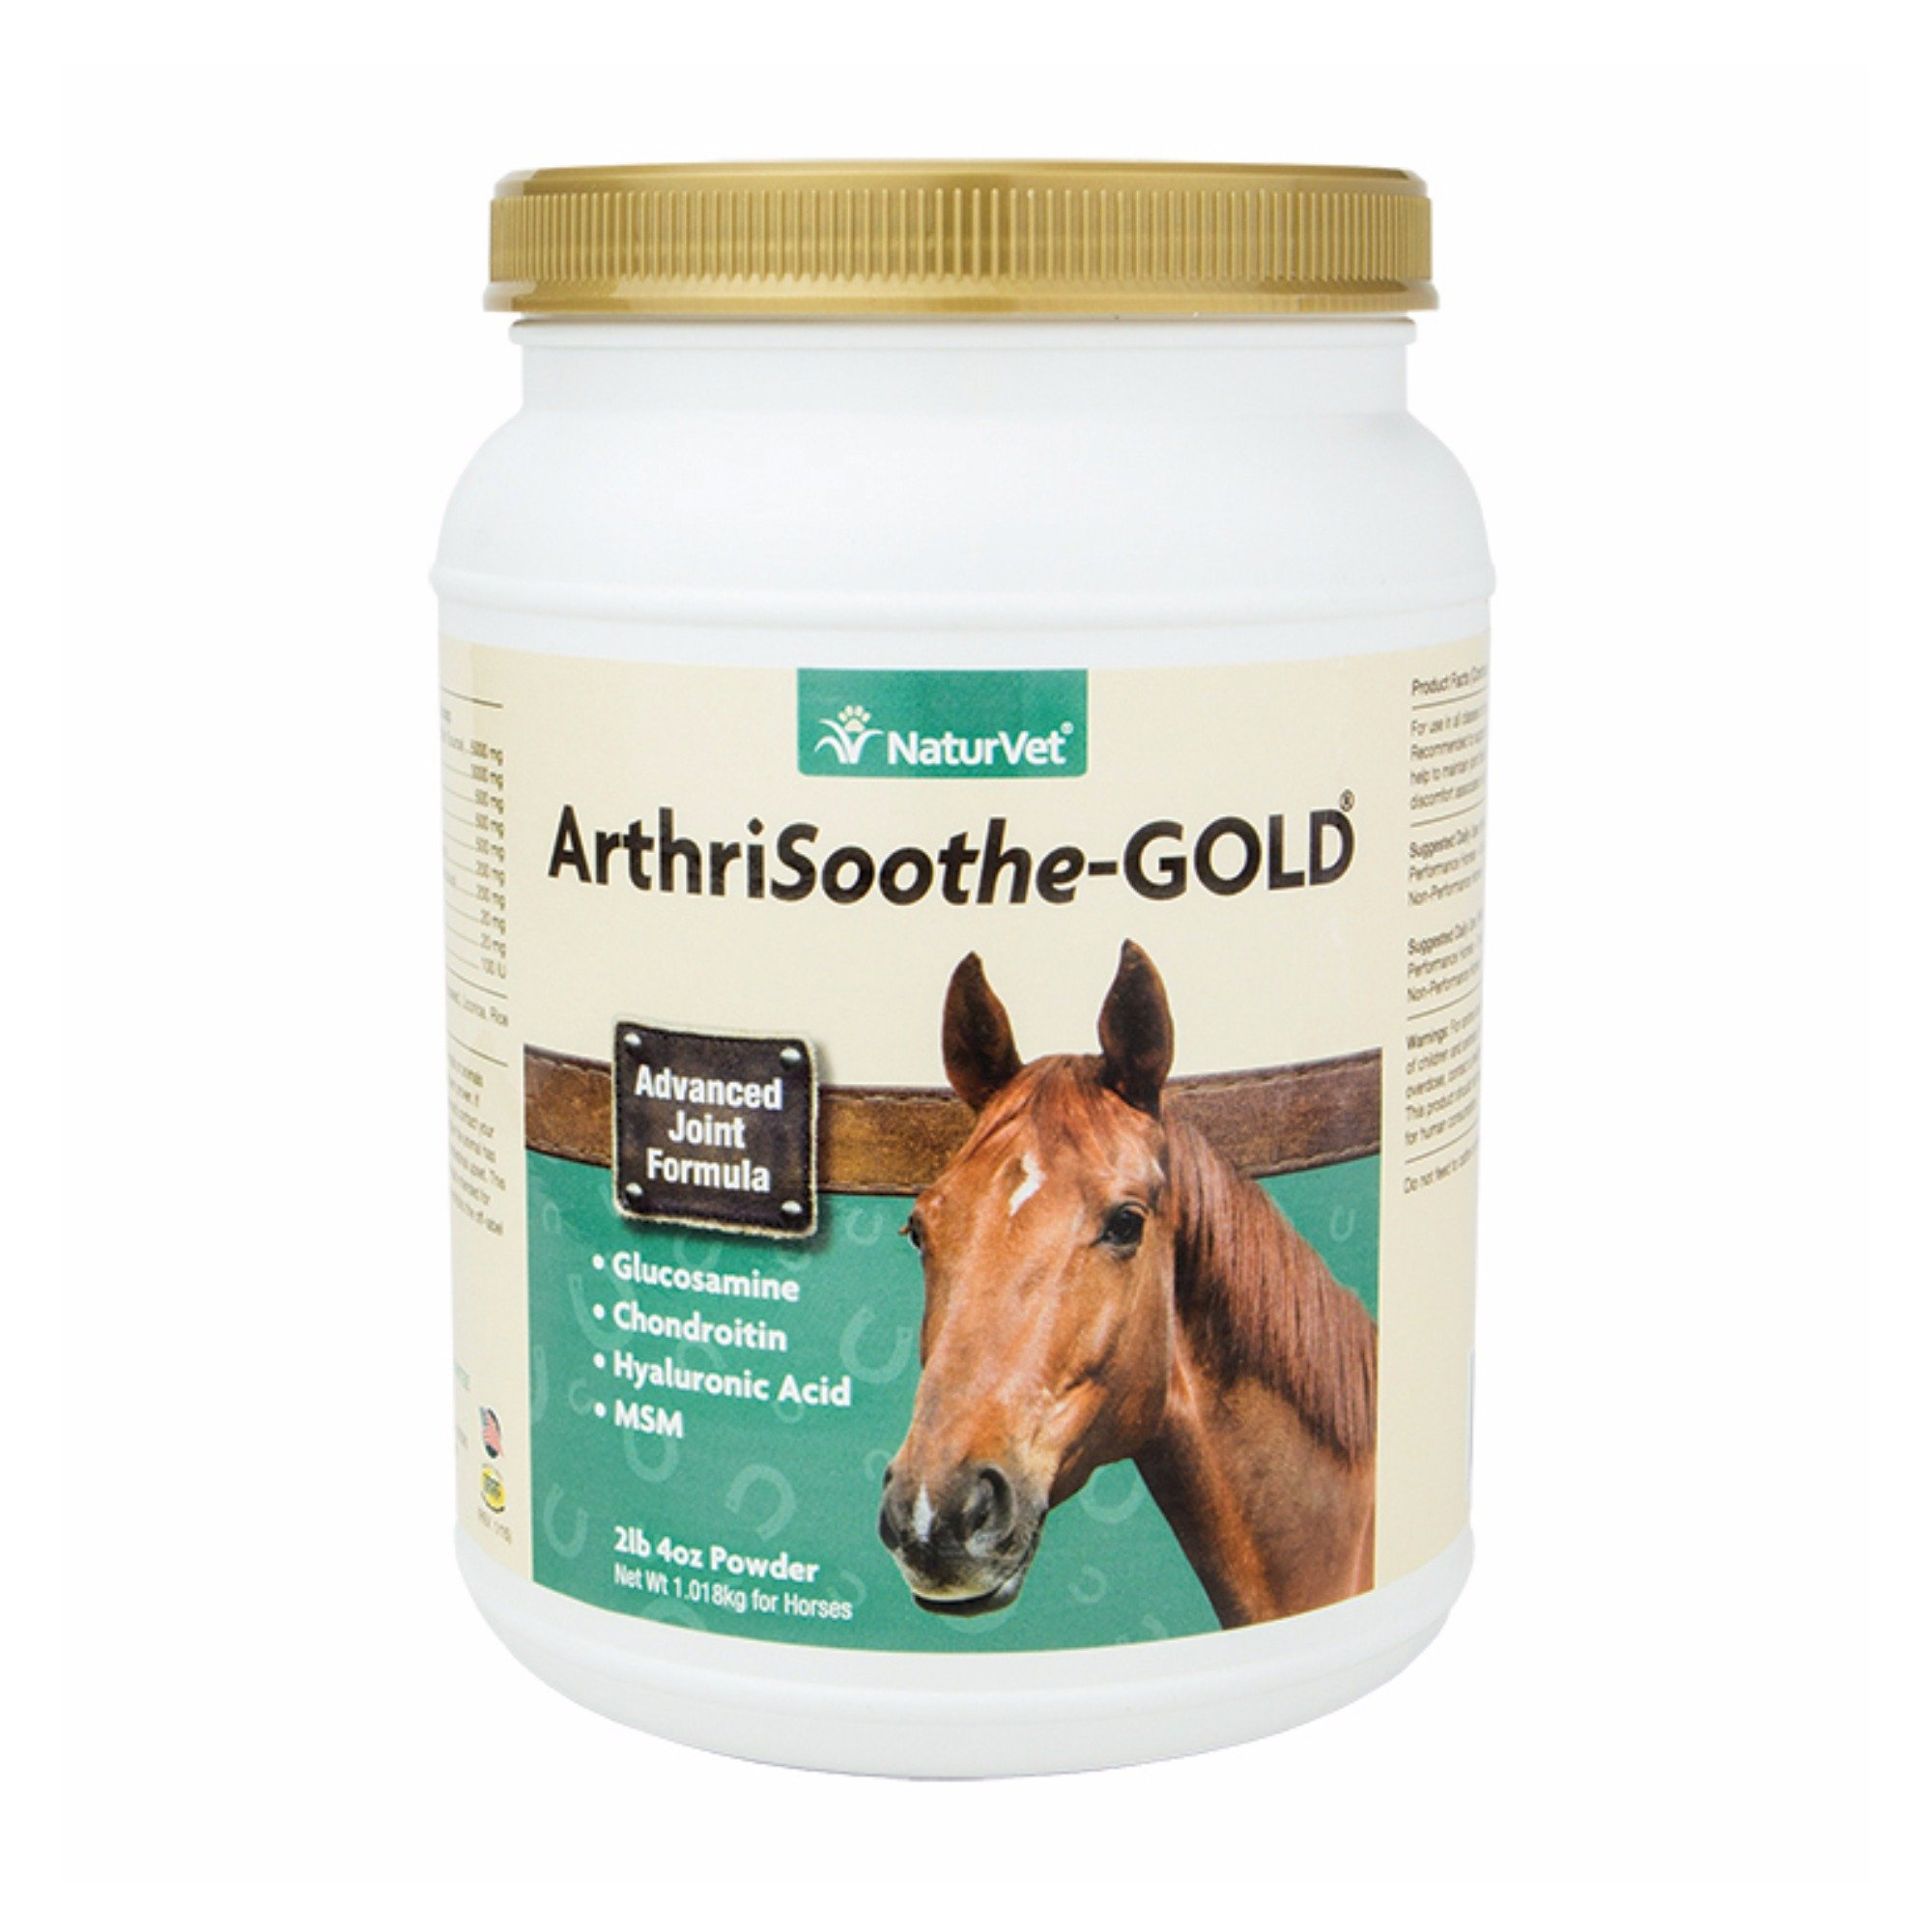 NaturVet ArthriSoothe-Gold Horse Powder, 60 Day Supply